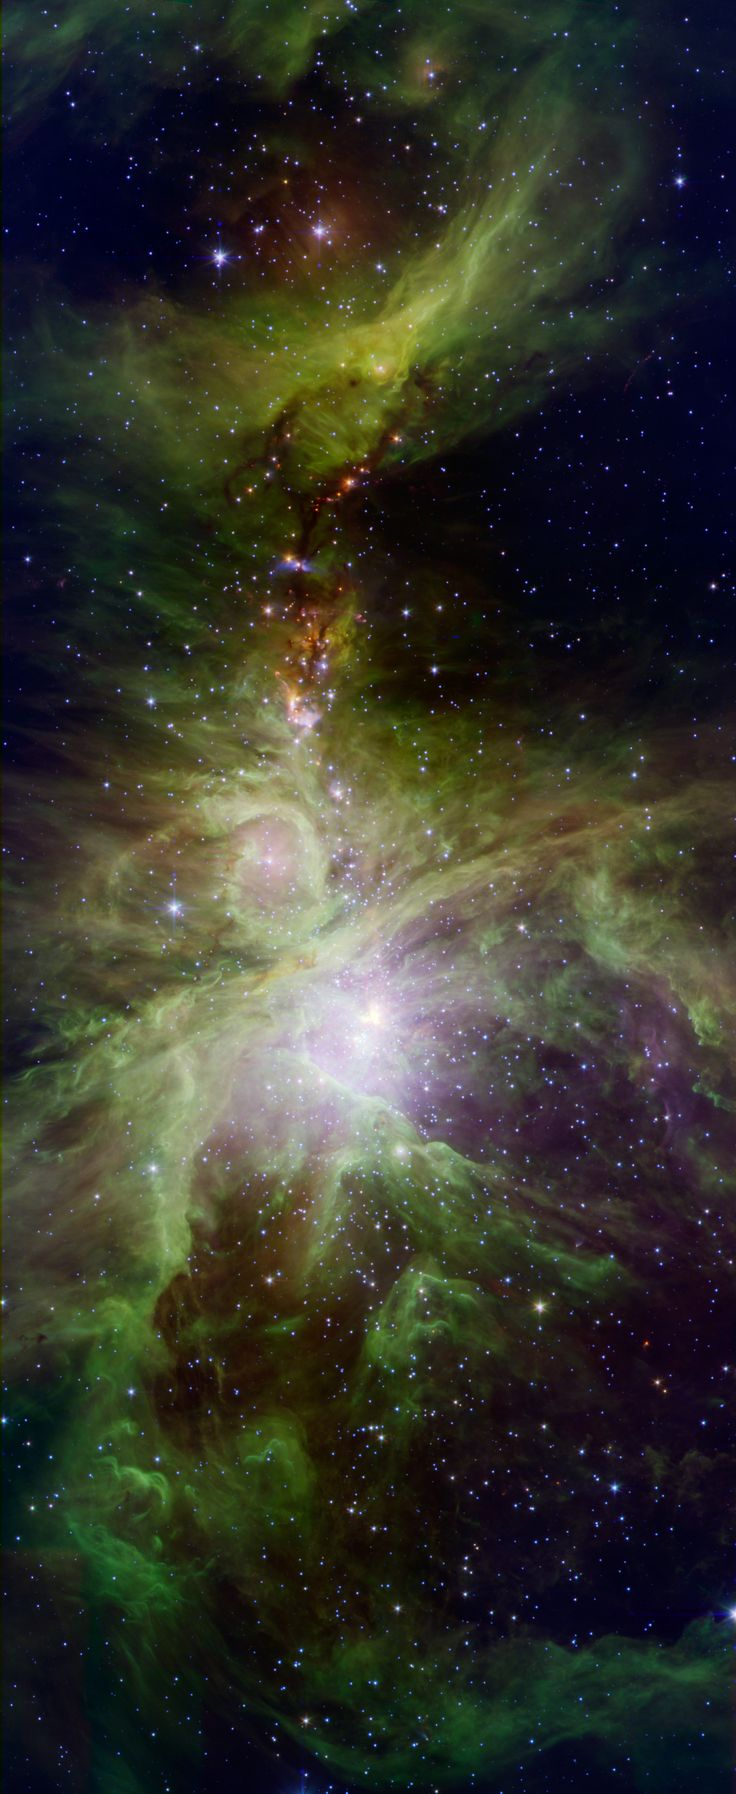 Trapezium cluster. Orion Trapezium Cluster is a tight open cluster of stars in the heart of the Orion Nebula, in the constellation of Orion. It was discovered by Galileo Galilei.